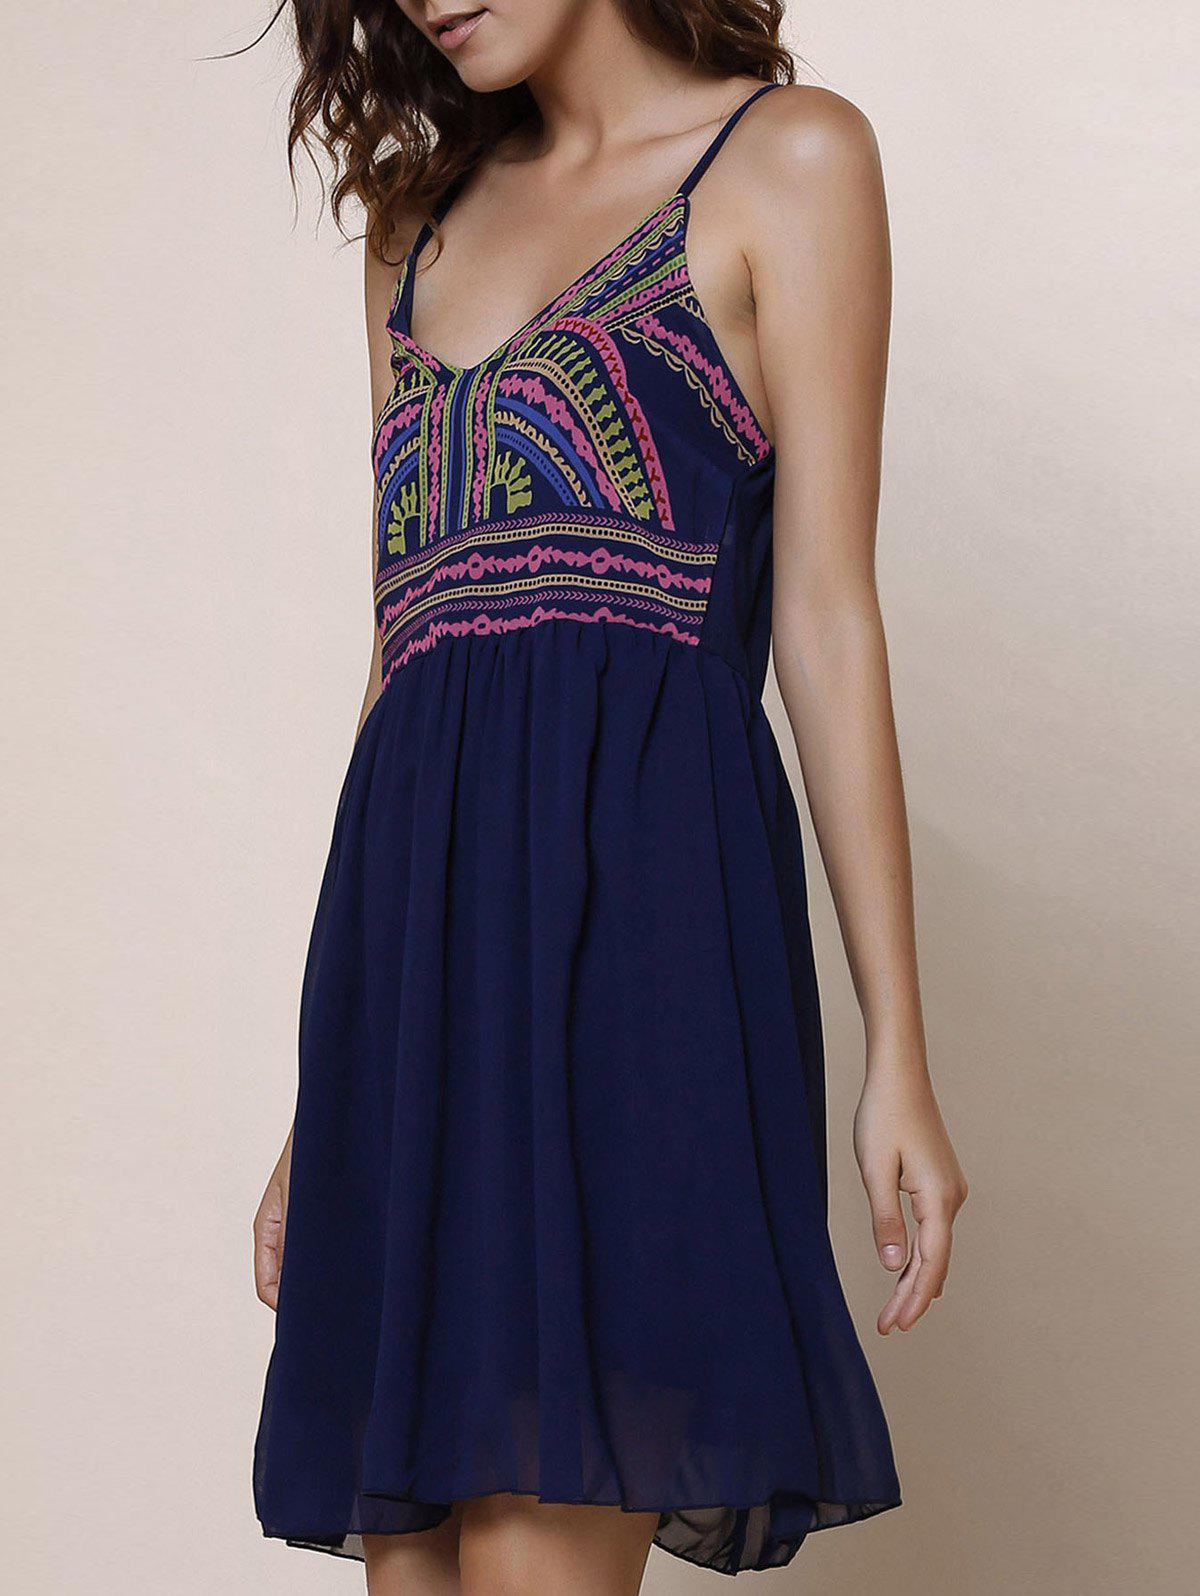 Spaghetti Strap Color Block Print Sleeveless Dress - PURPLISH BLUE S